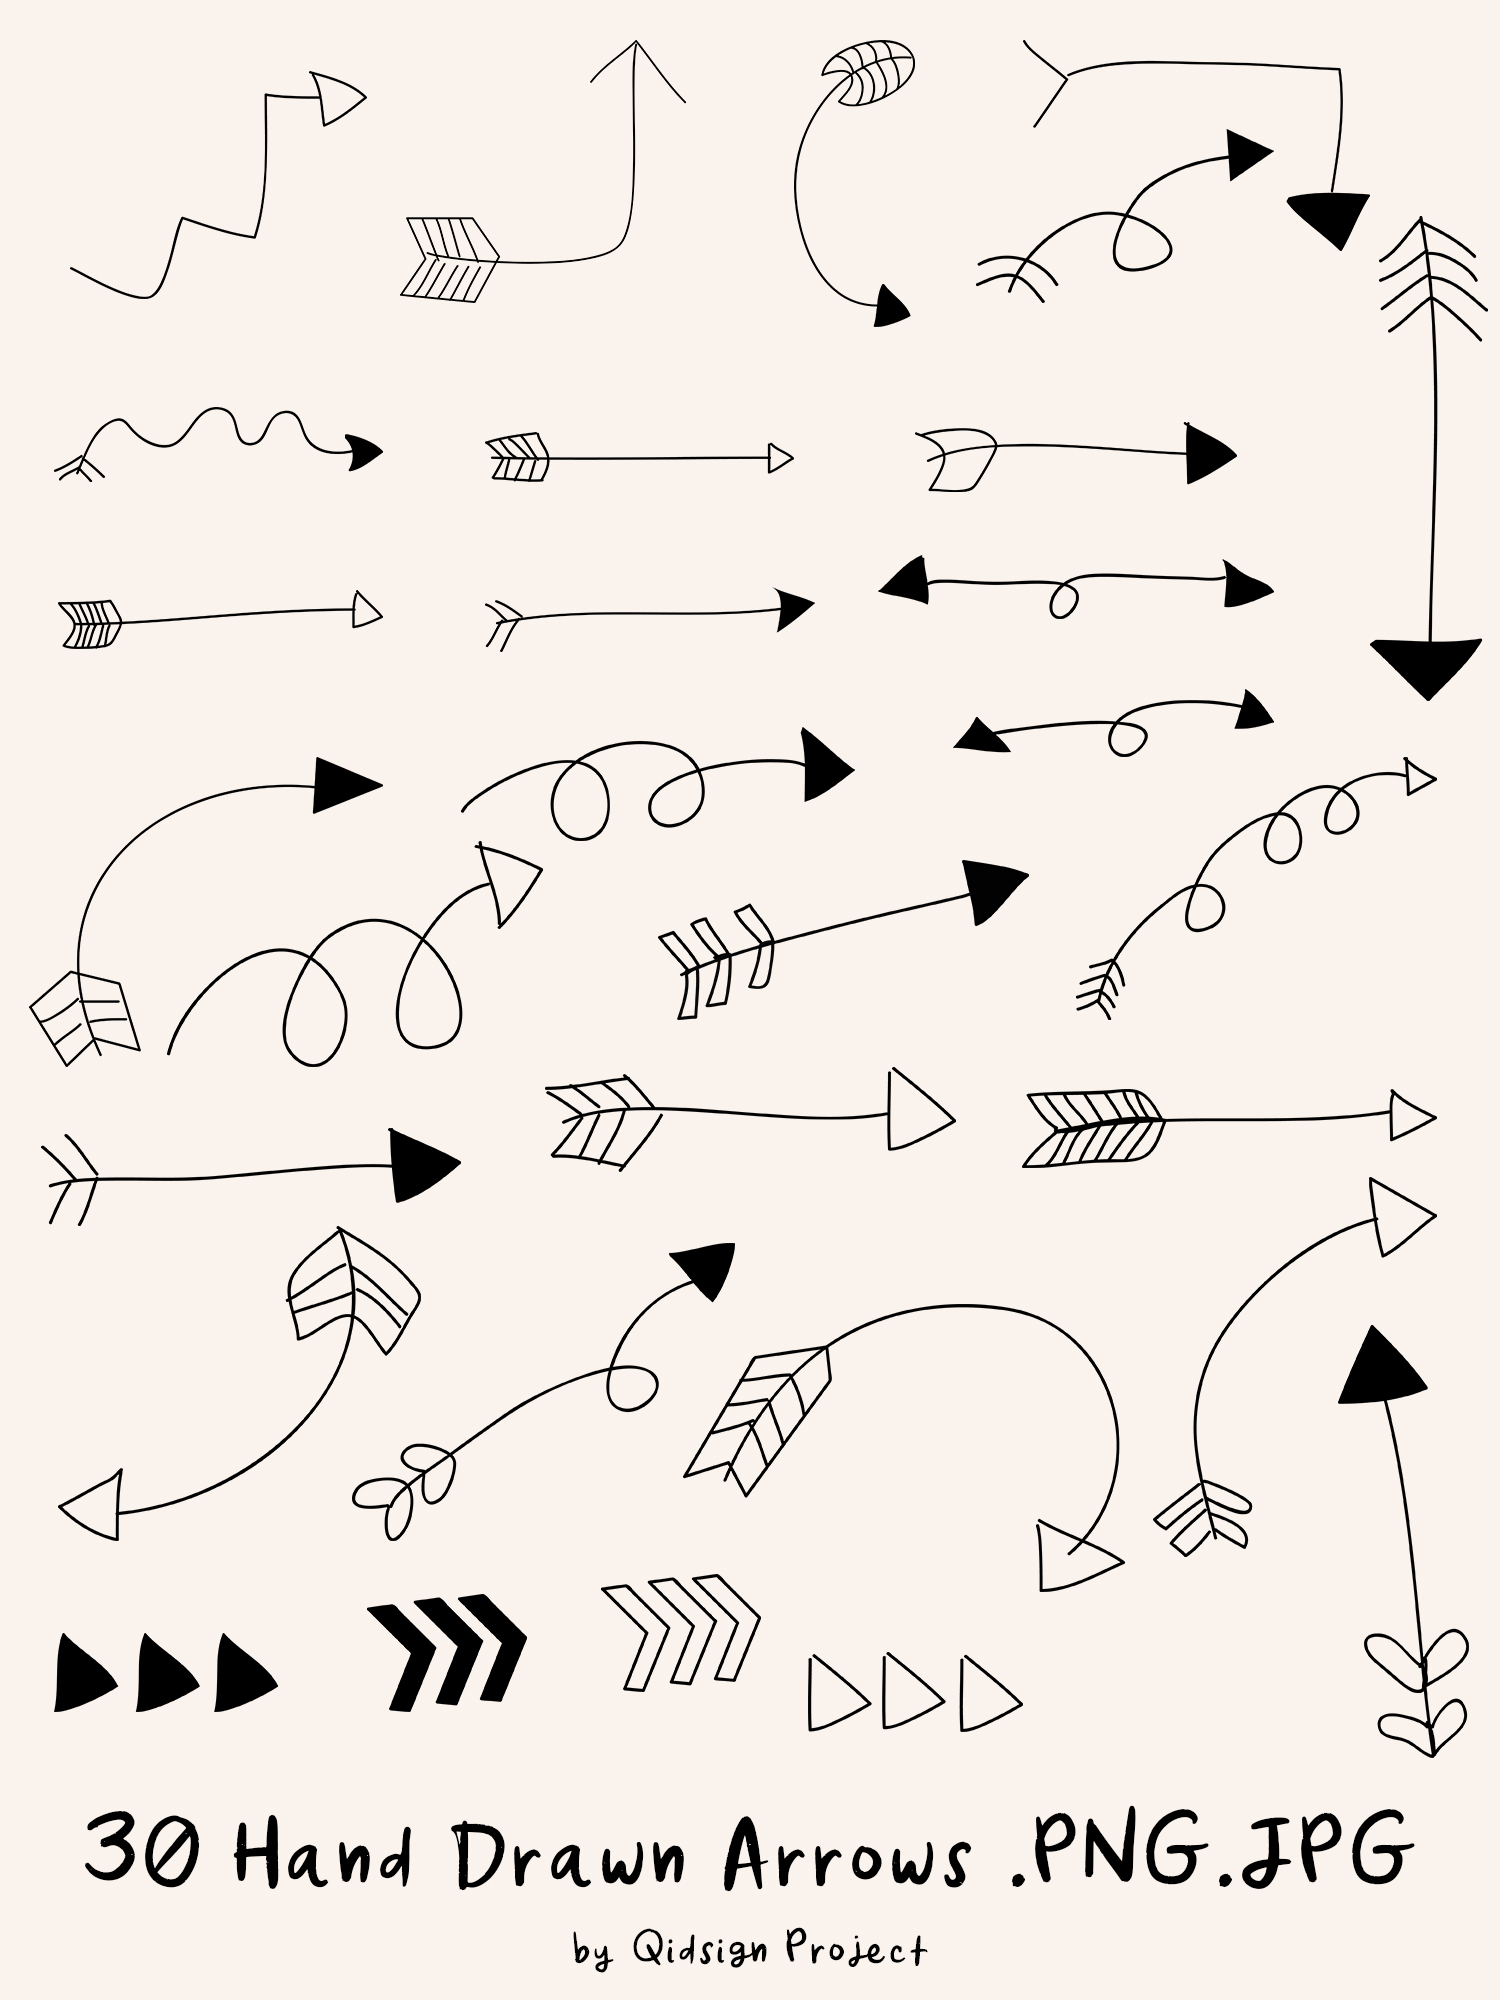 Hand Drawn Arrows Clipart .PNG .JPG example image 2